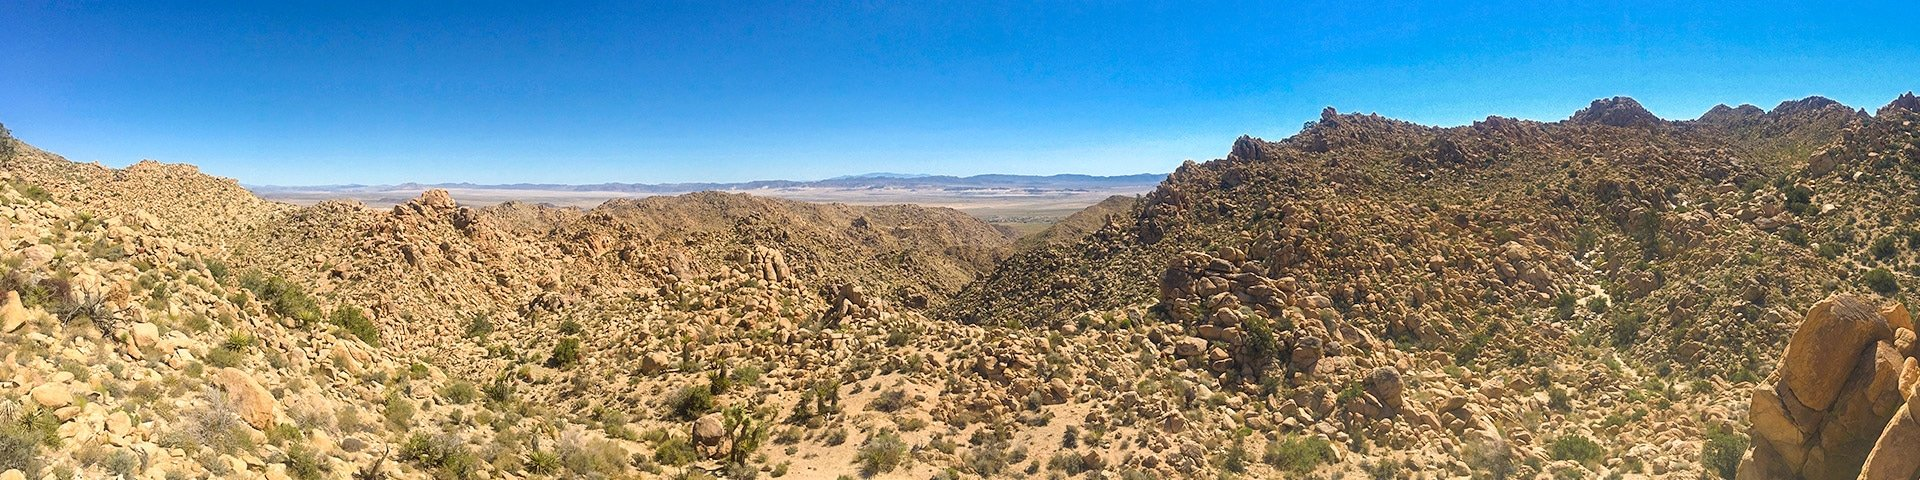 Panorama of the Boy Scouts trail hike in Joshua Tree National Park, California